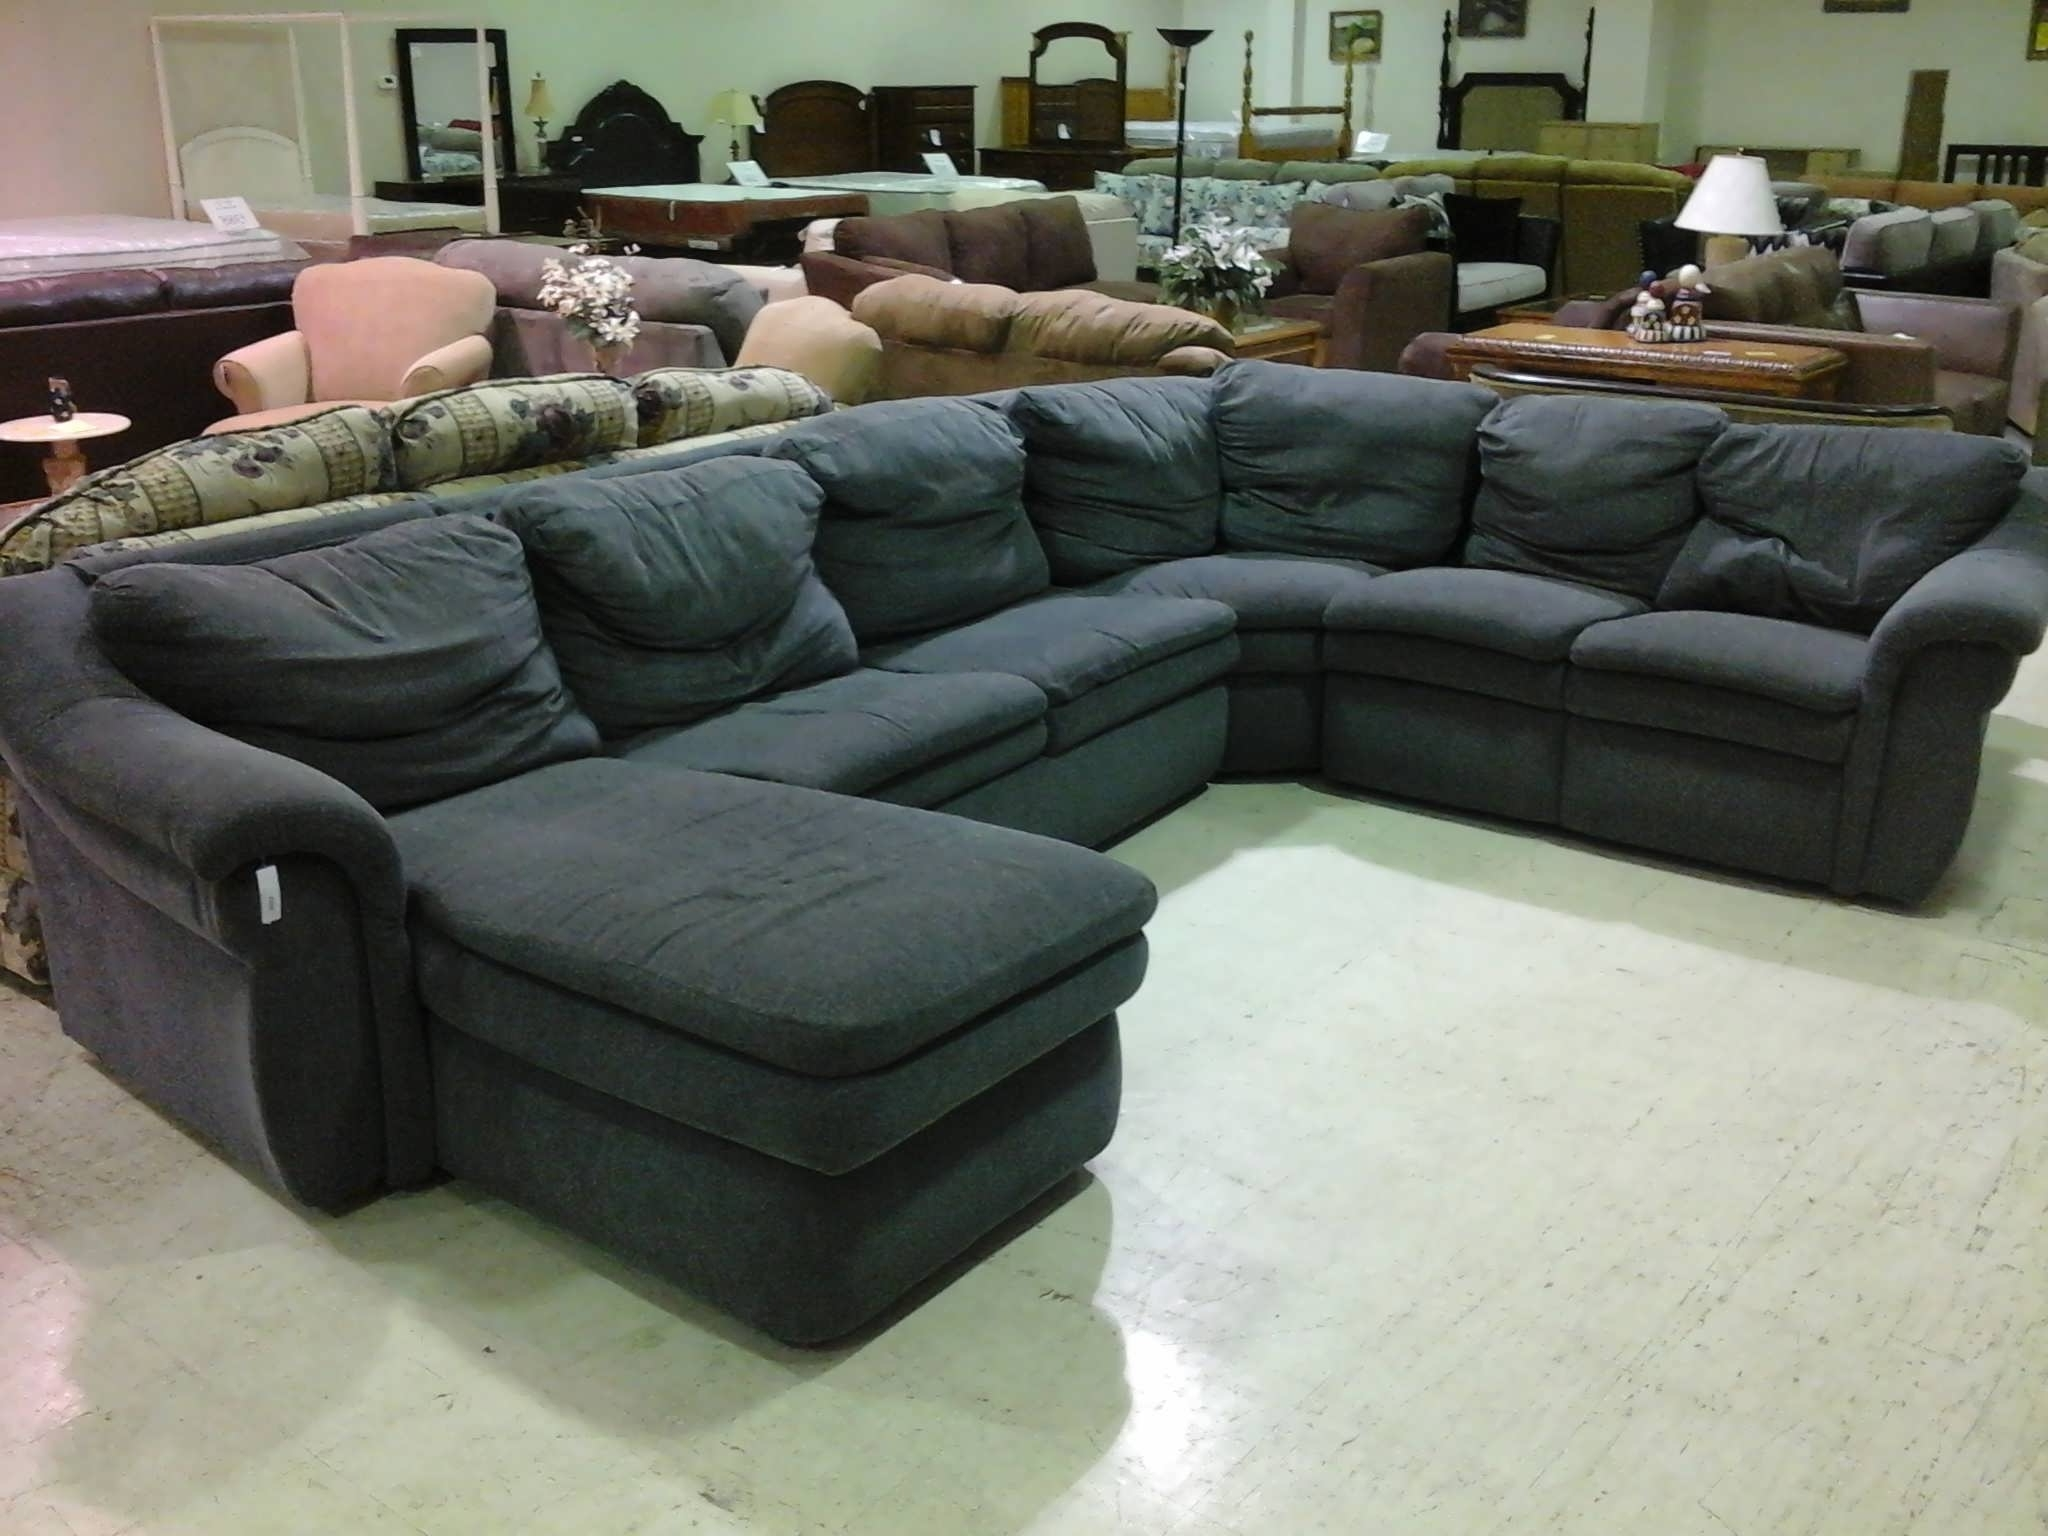 Preferred Sectional Couches With Chaise In Sofa : Chaise Sofa Leather L Shaped Couch Black Sectional Couch (View 8 of 15)